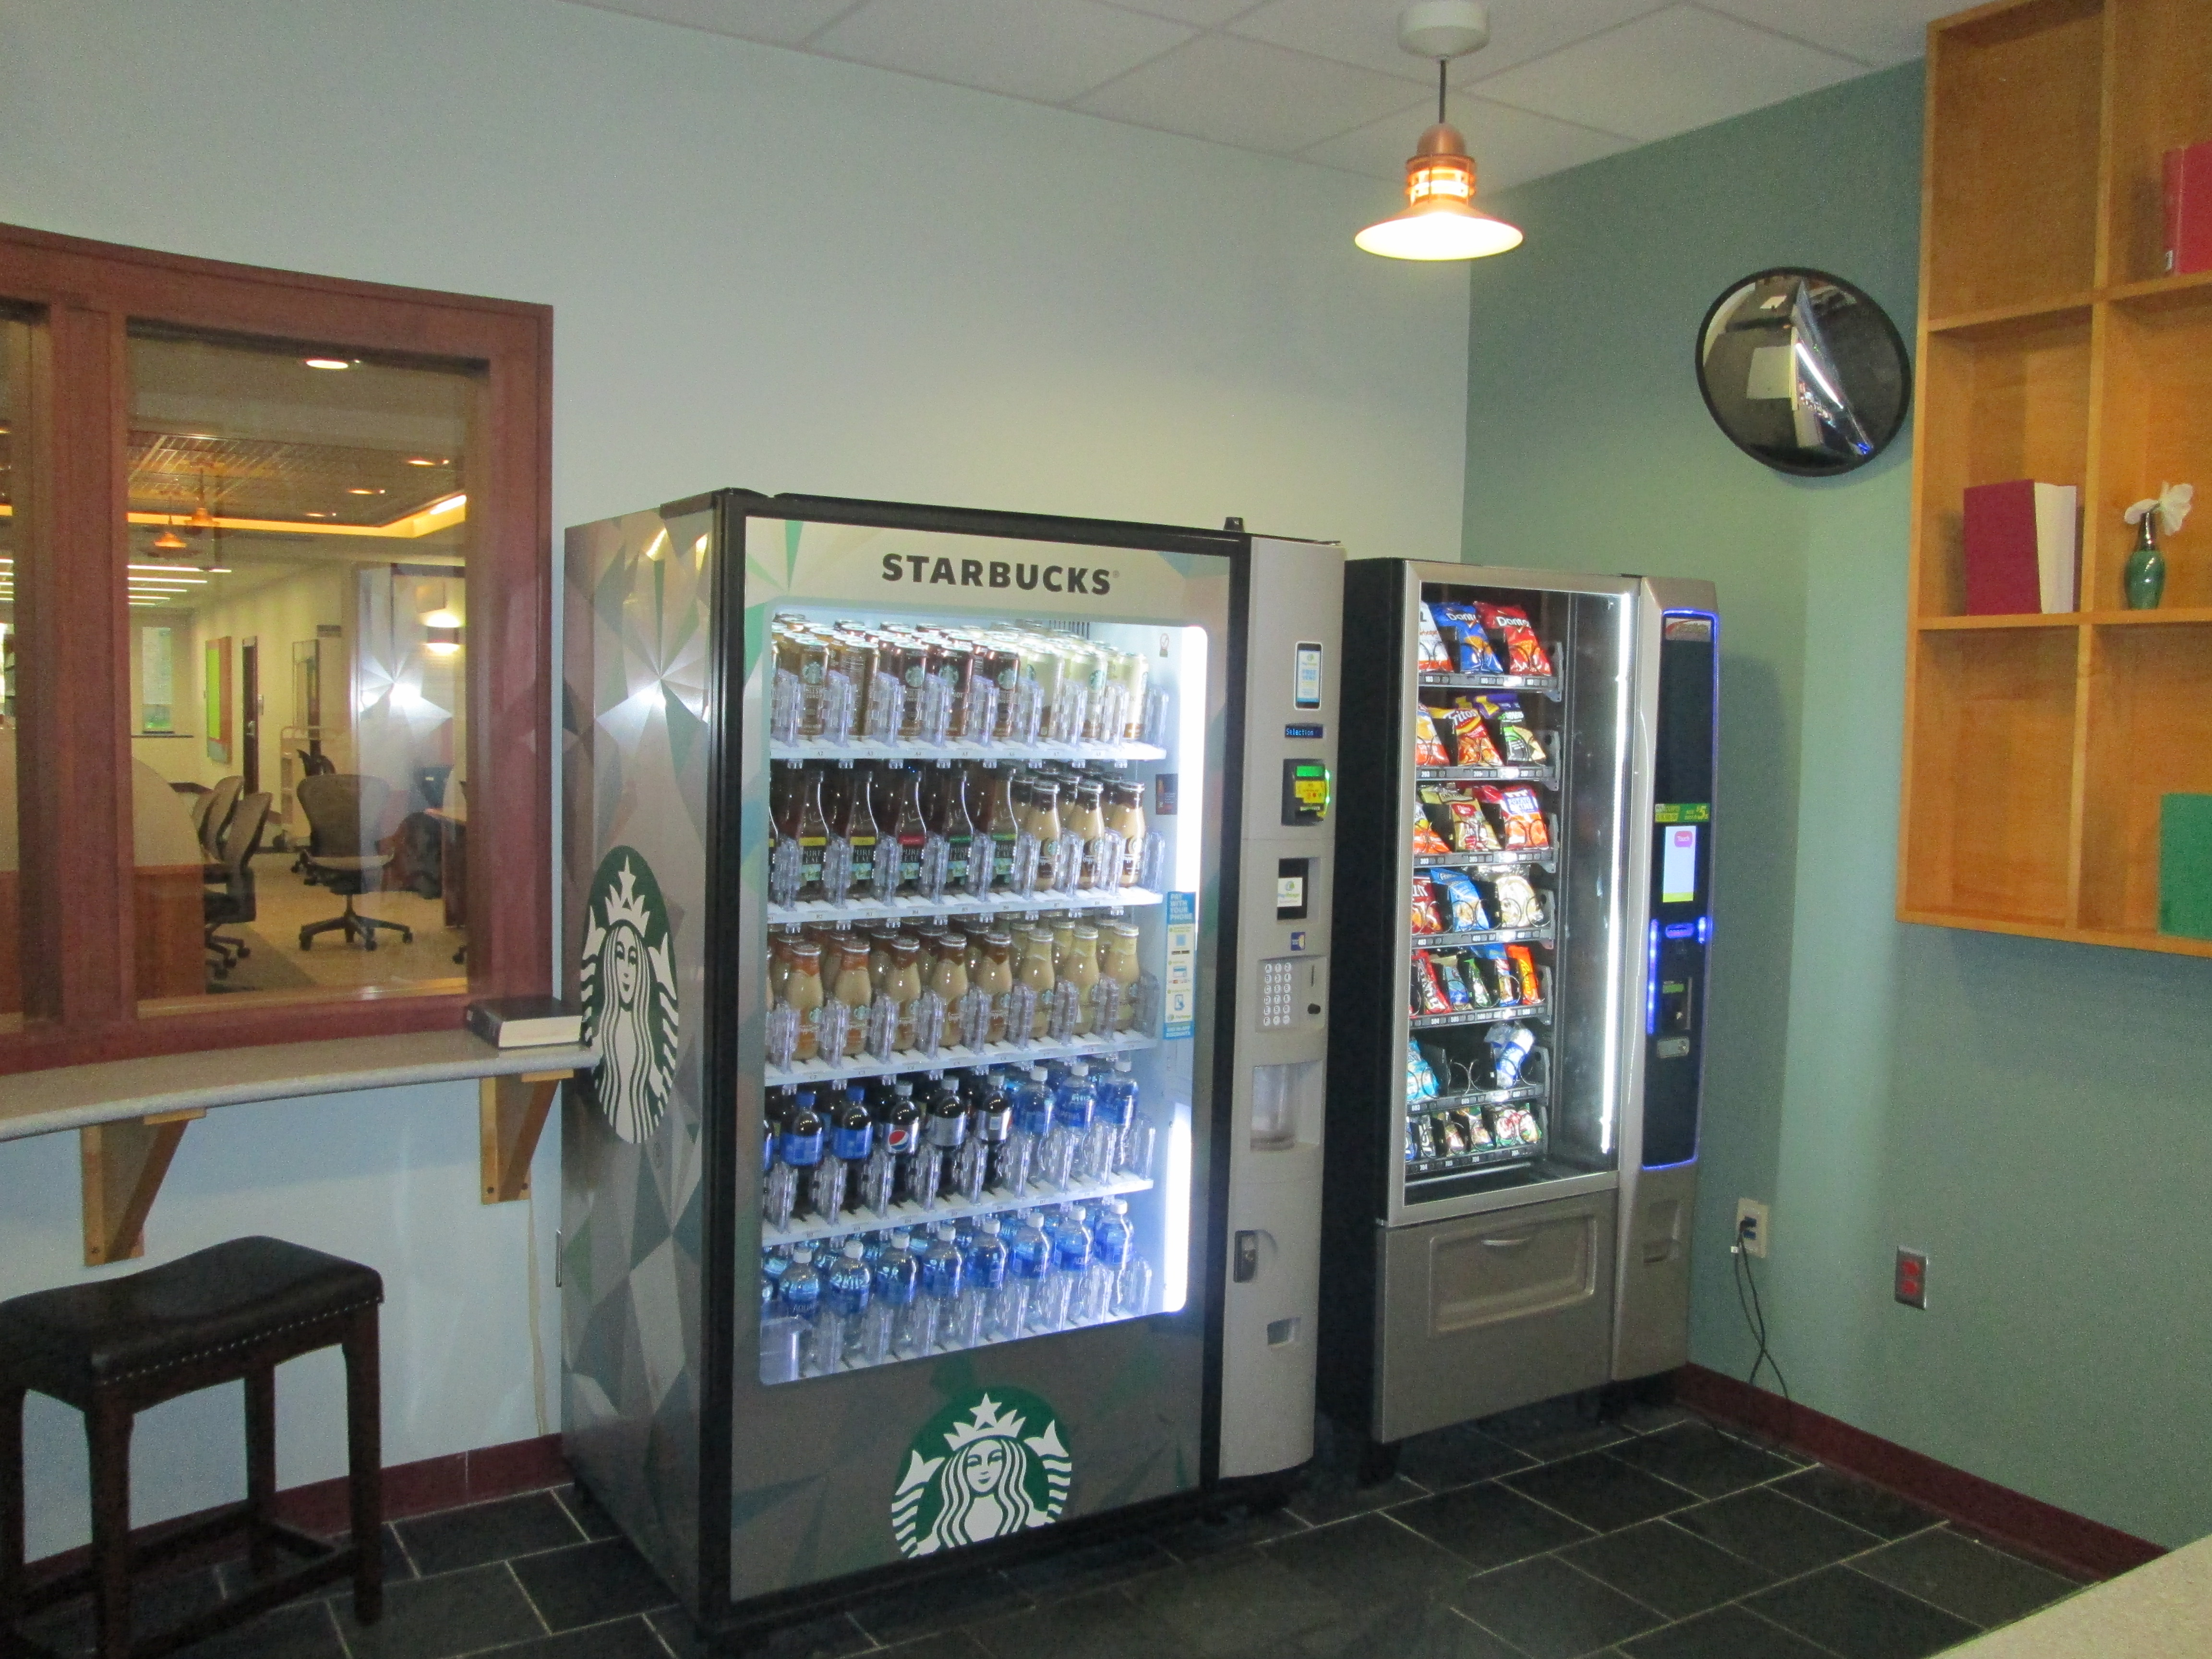 Cold vending machines with drinks and snacks